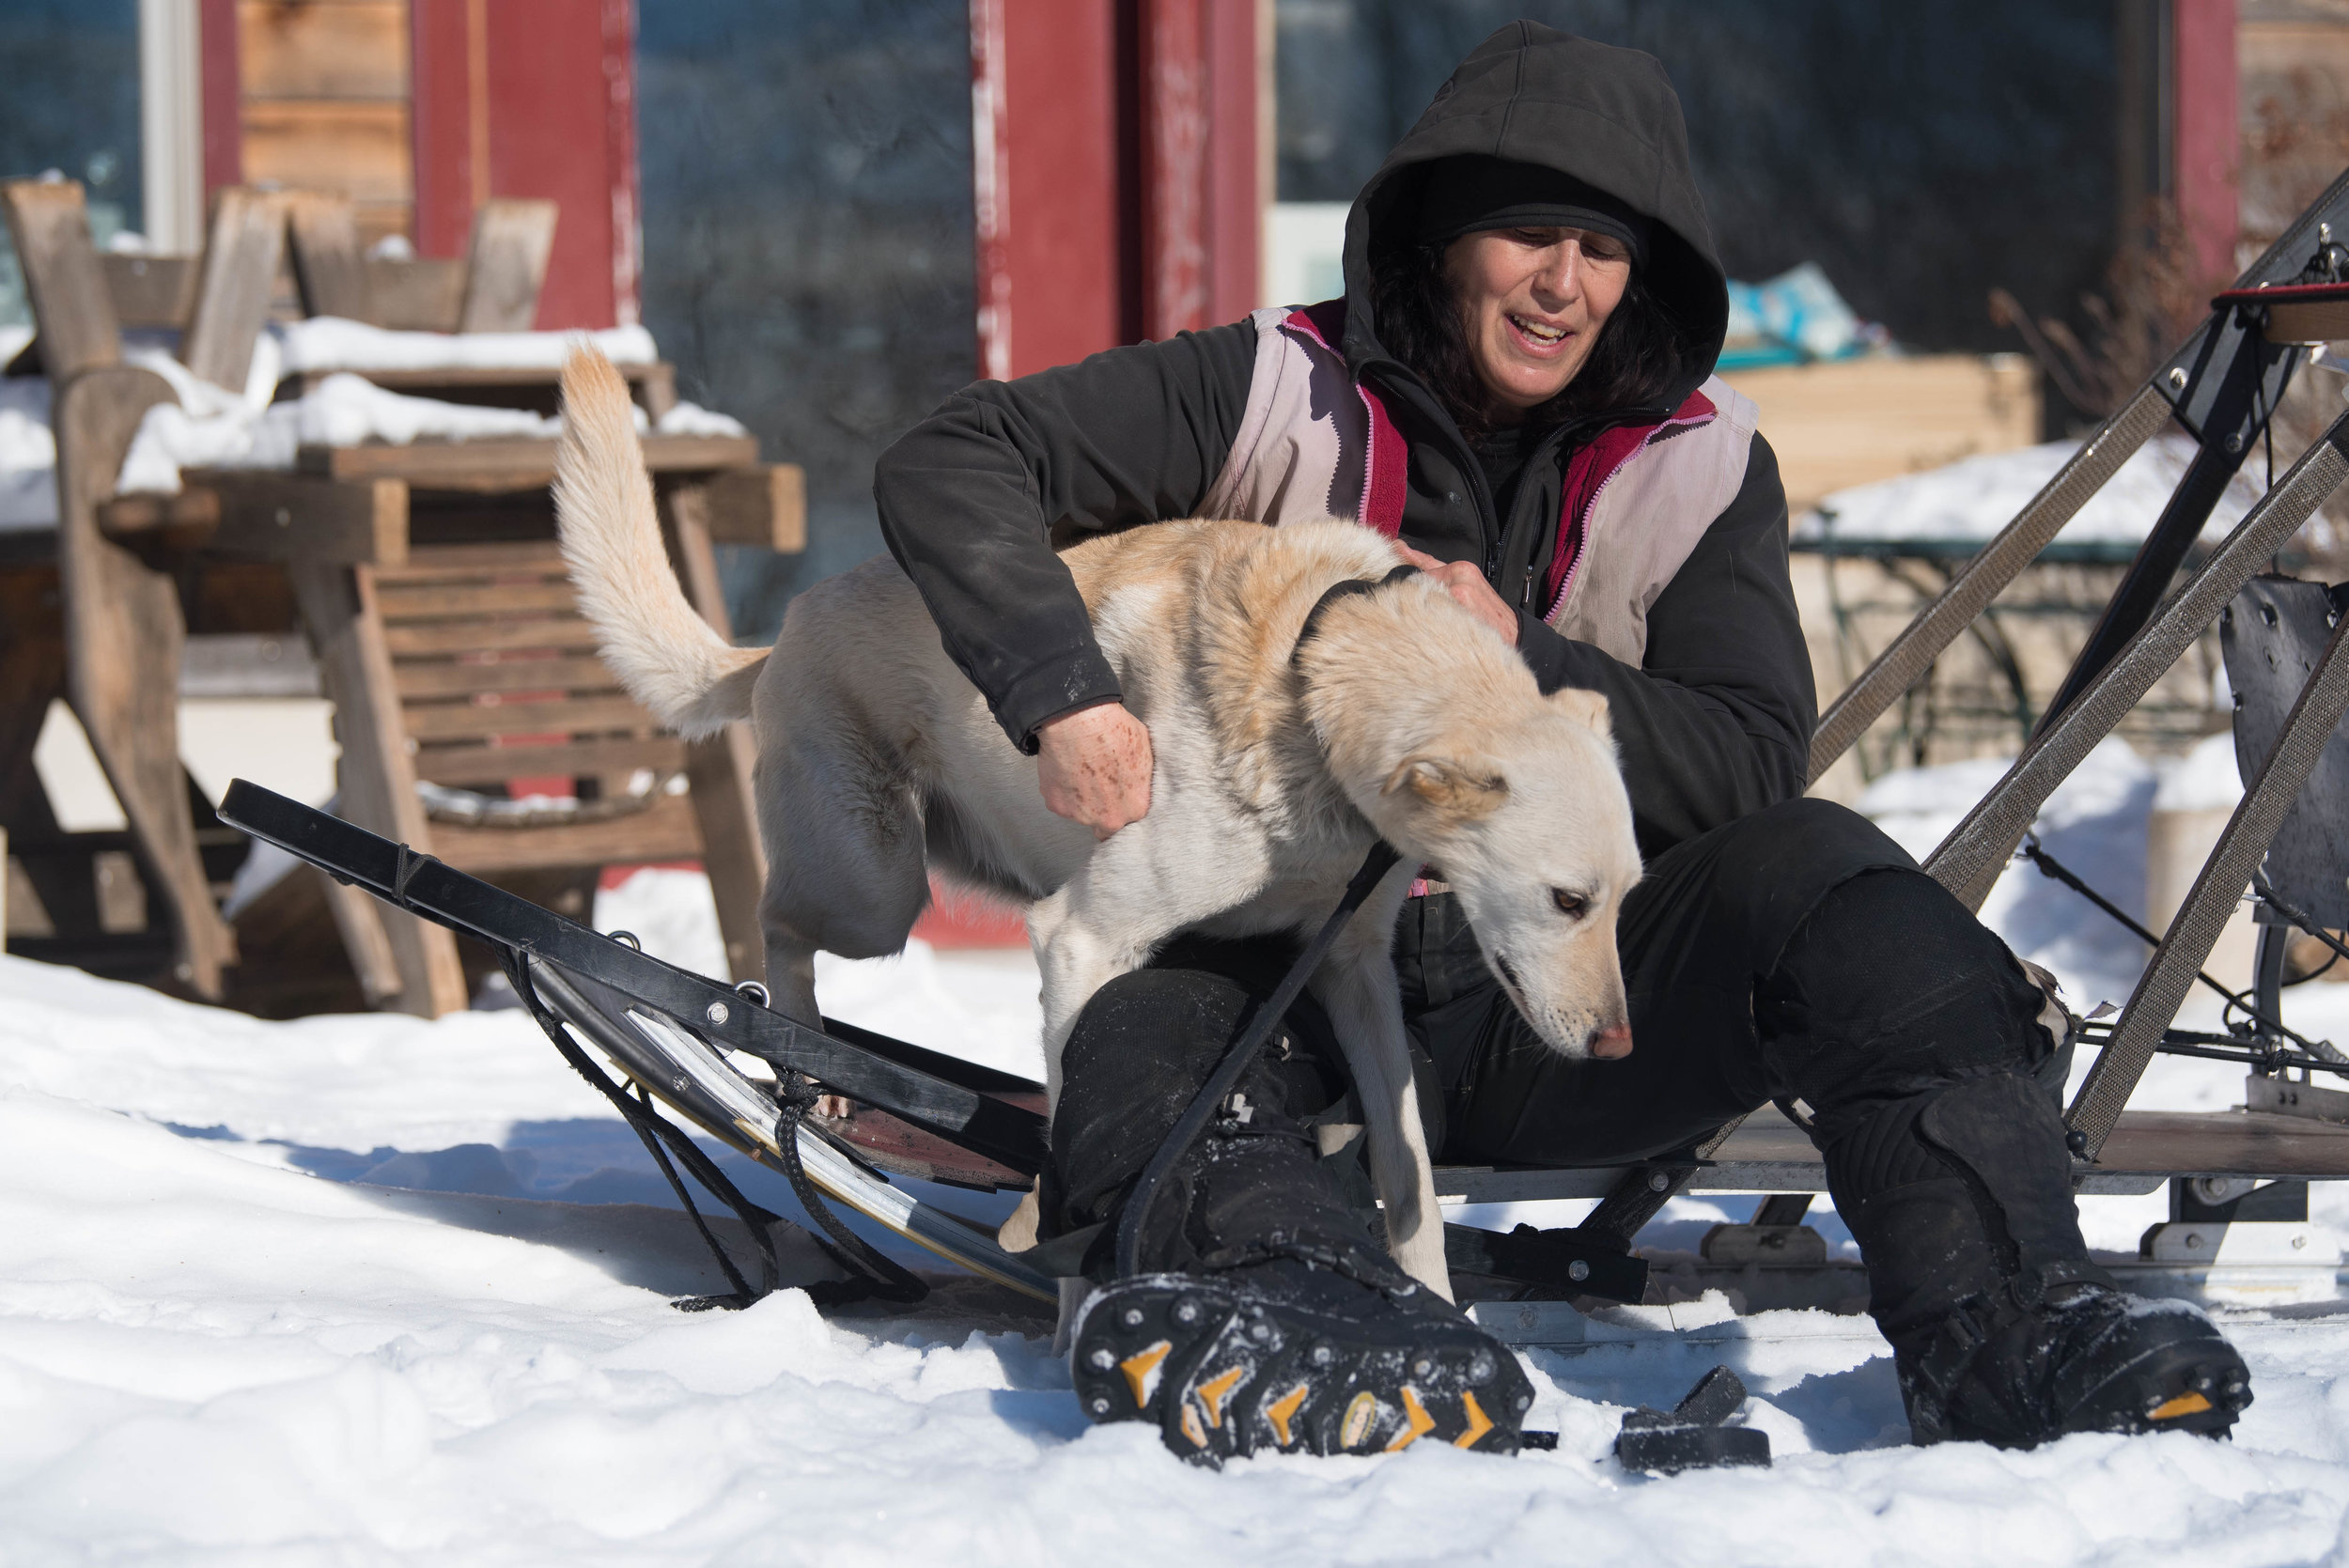 Marla Brodsky lives entirely off the grid with her twenty two Alaskan Huskies in Massachusetts.  The property is completely self sufficient, no electricity, and no plumbing.  Dog waste is composted and shared with a local farm, and raw meat unfit for human consumption is obtained from local slaughterhouses to feed the dogs.